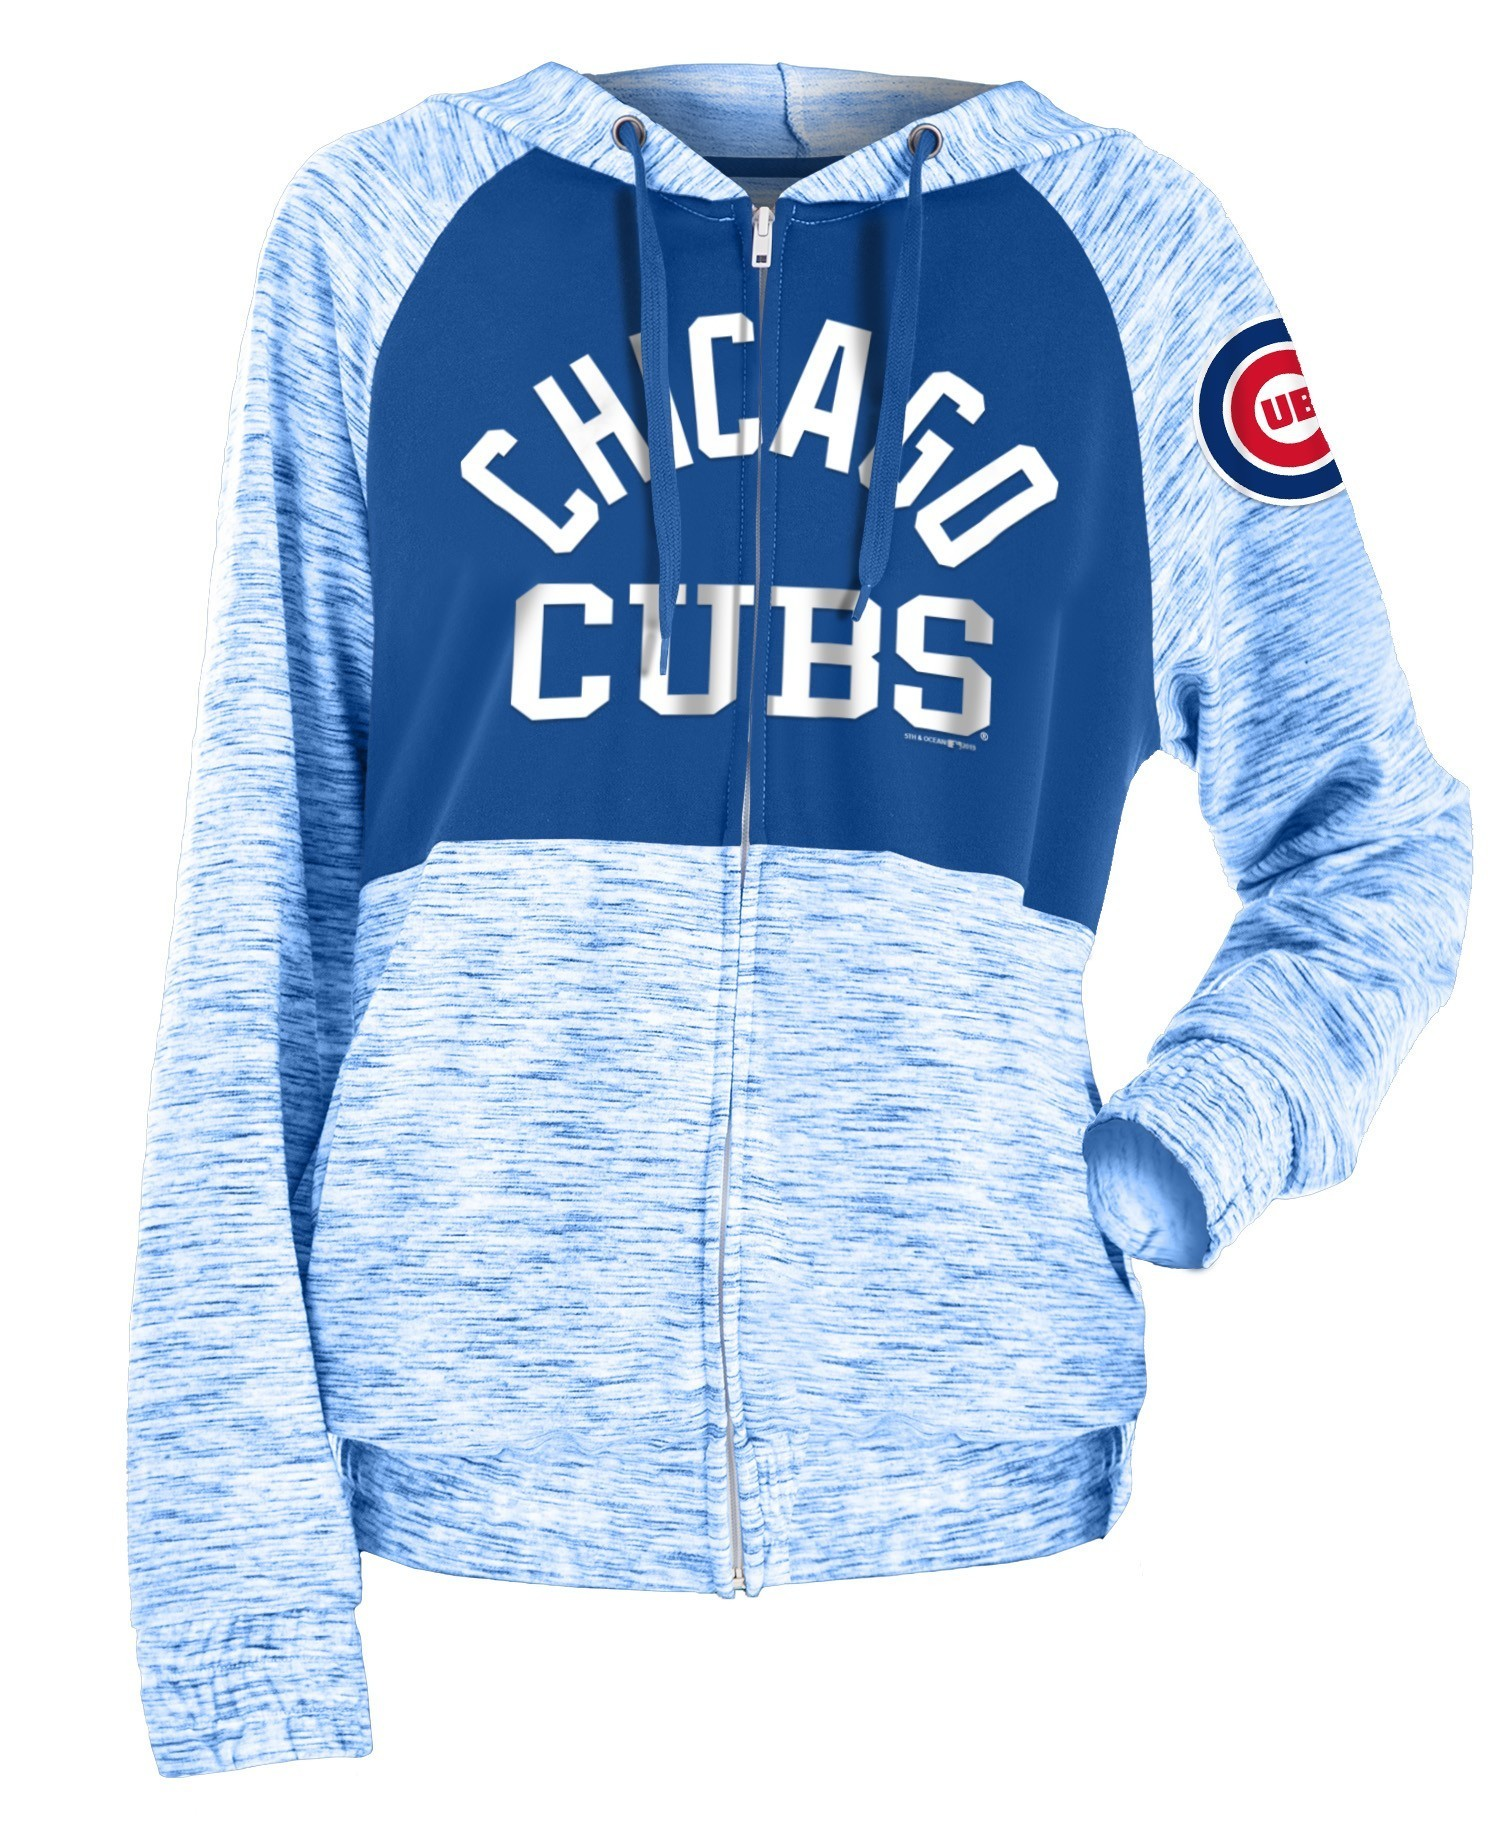 premium selection 53e8b 92f60 Details about Chicago Cubs Women's New Era MLB